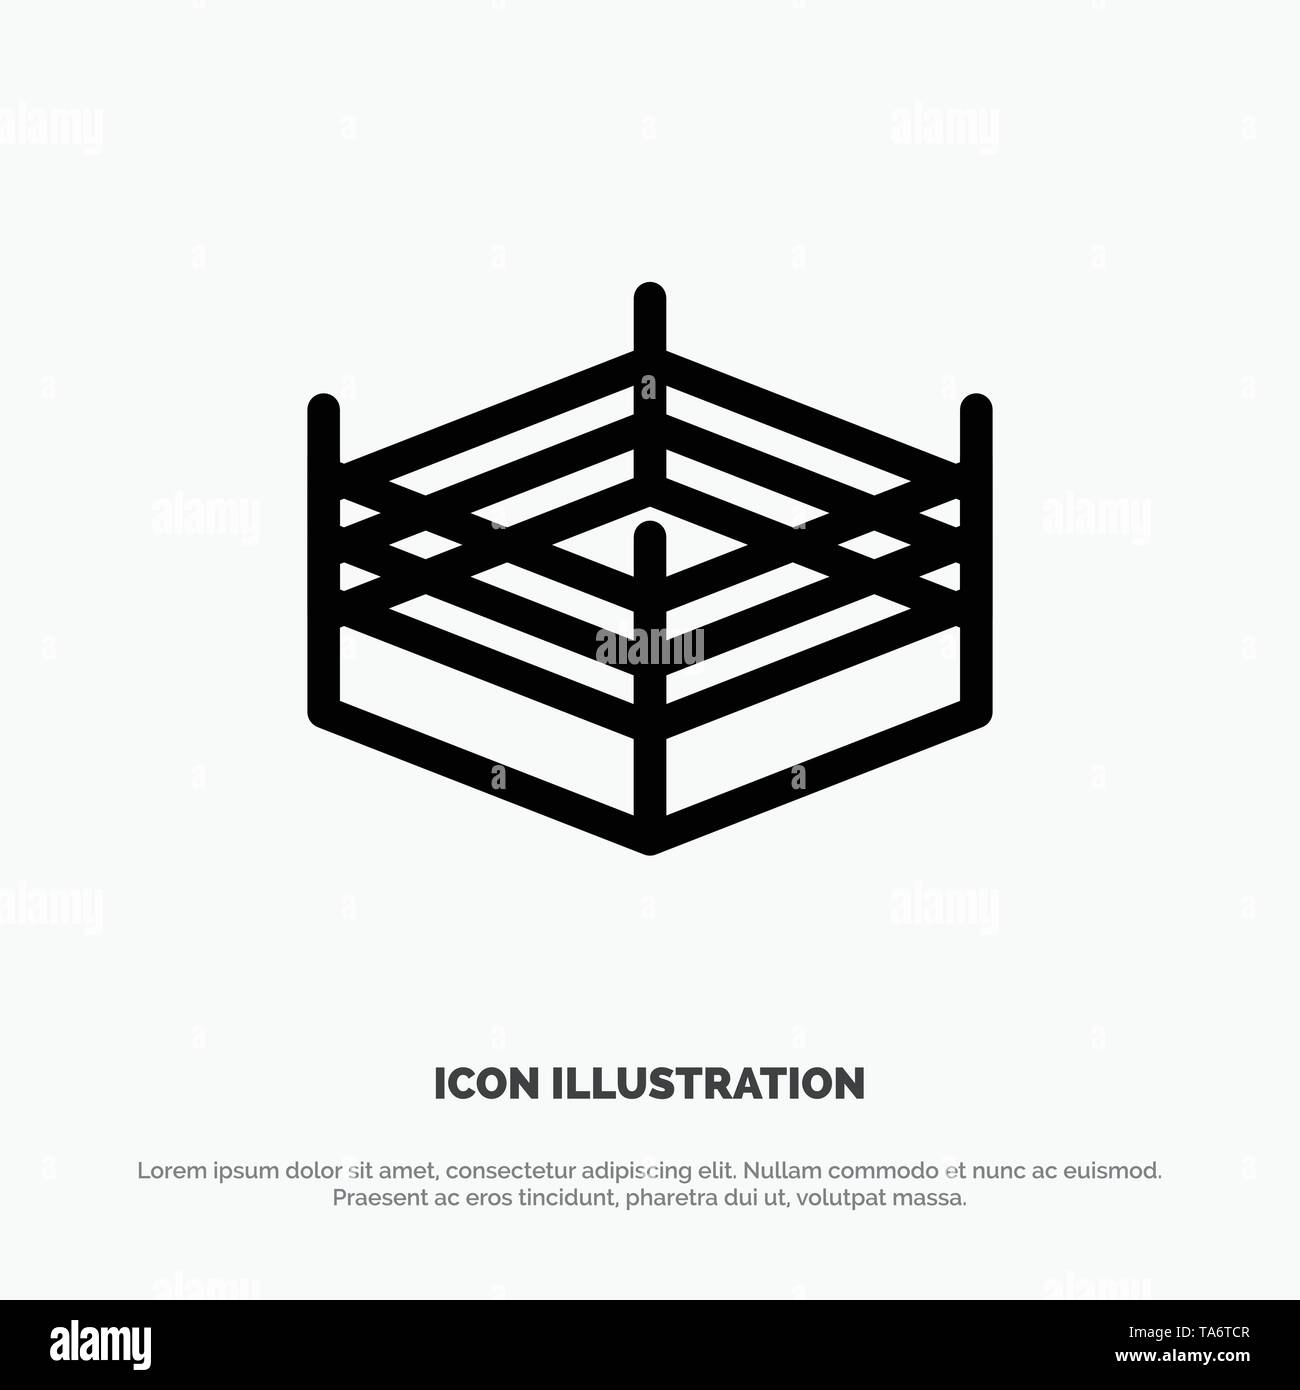 Boxing, Ring, Wrestling Line Icon Vector - Stock Image